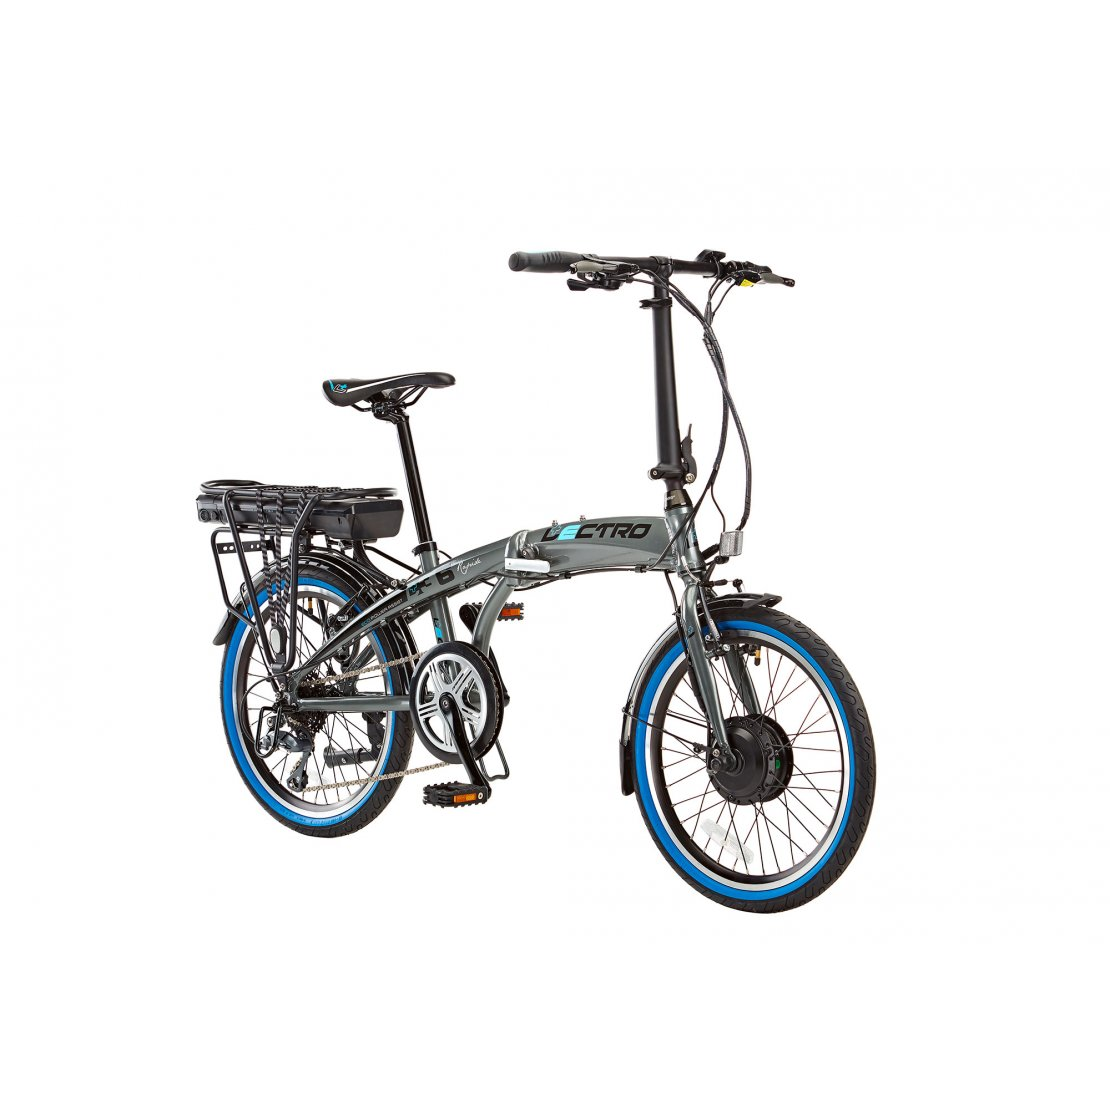 13 Rapide 8 Speed 36v E Bike 20 Wheel Grey Le002